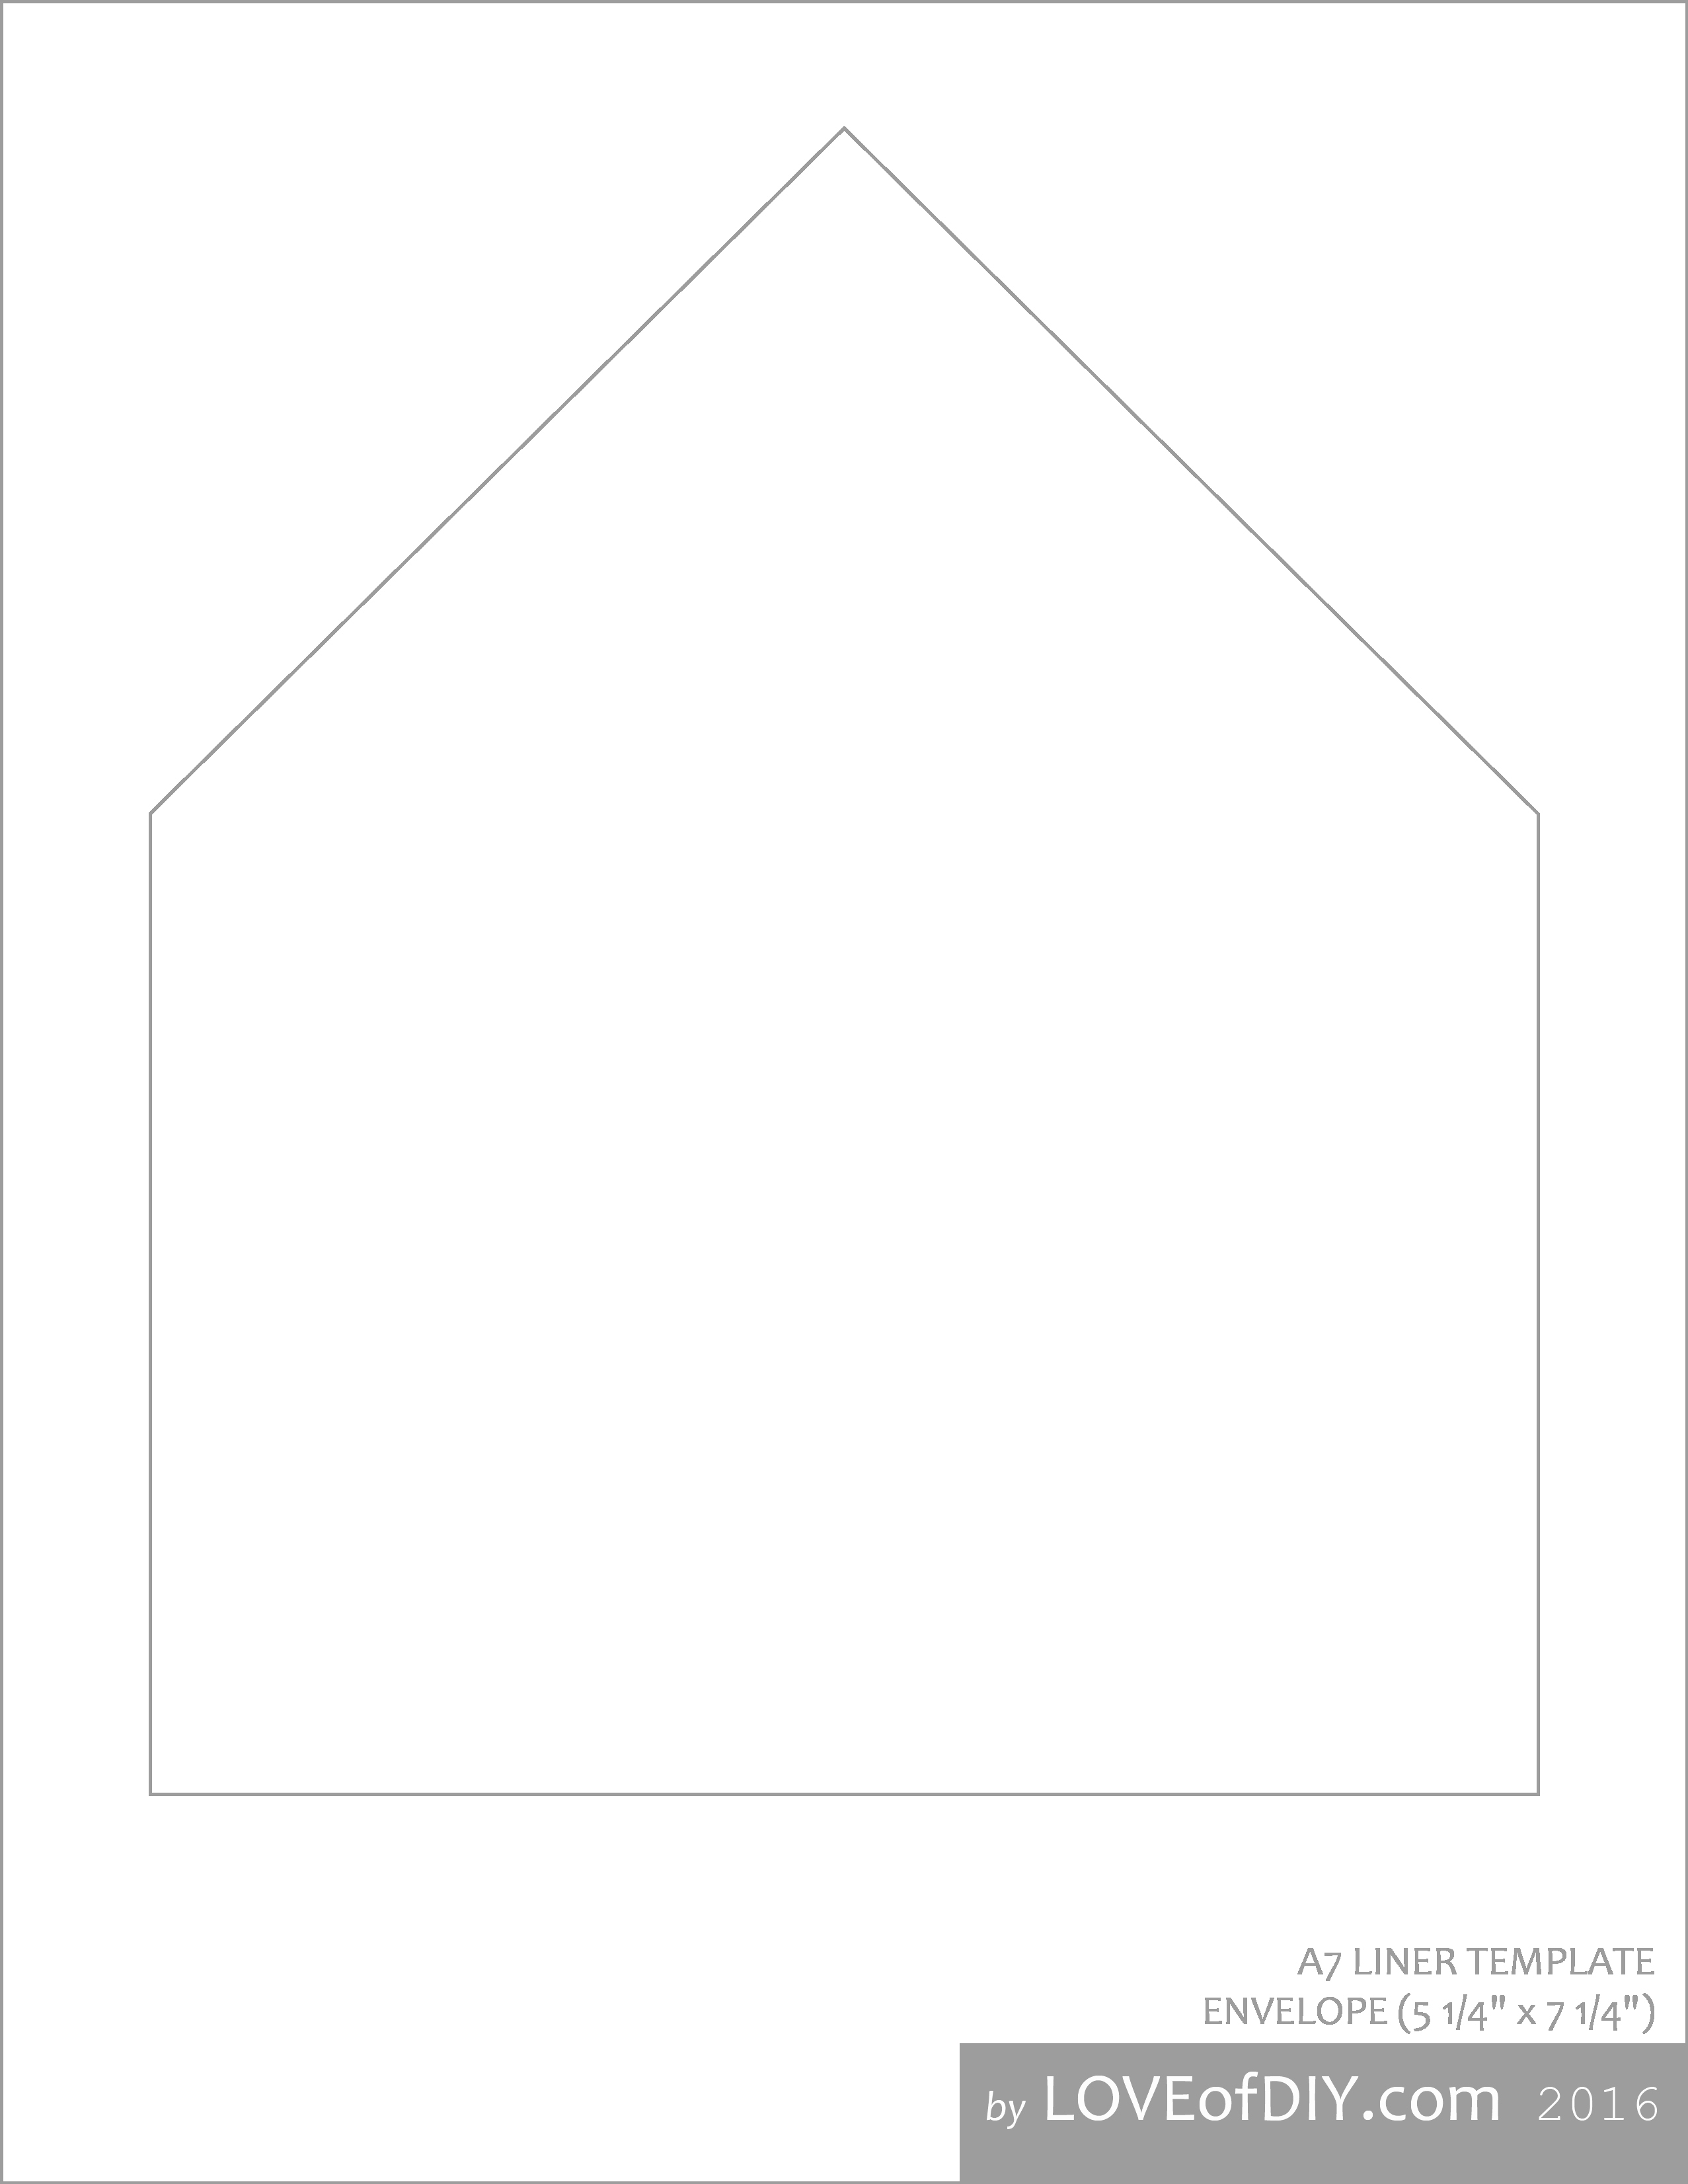 A7 Envelope Liner Template Gallery Template Design Ideas